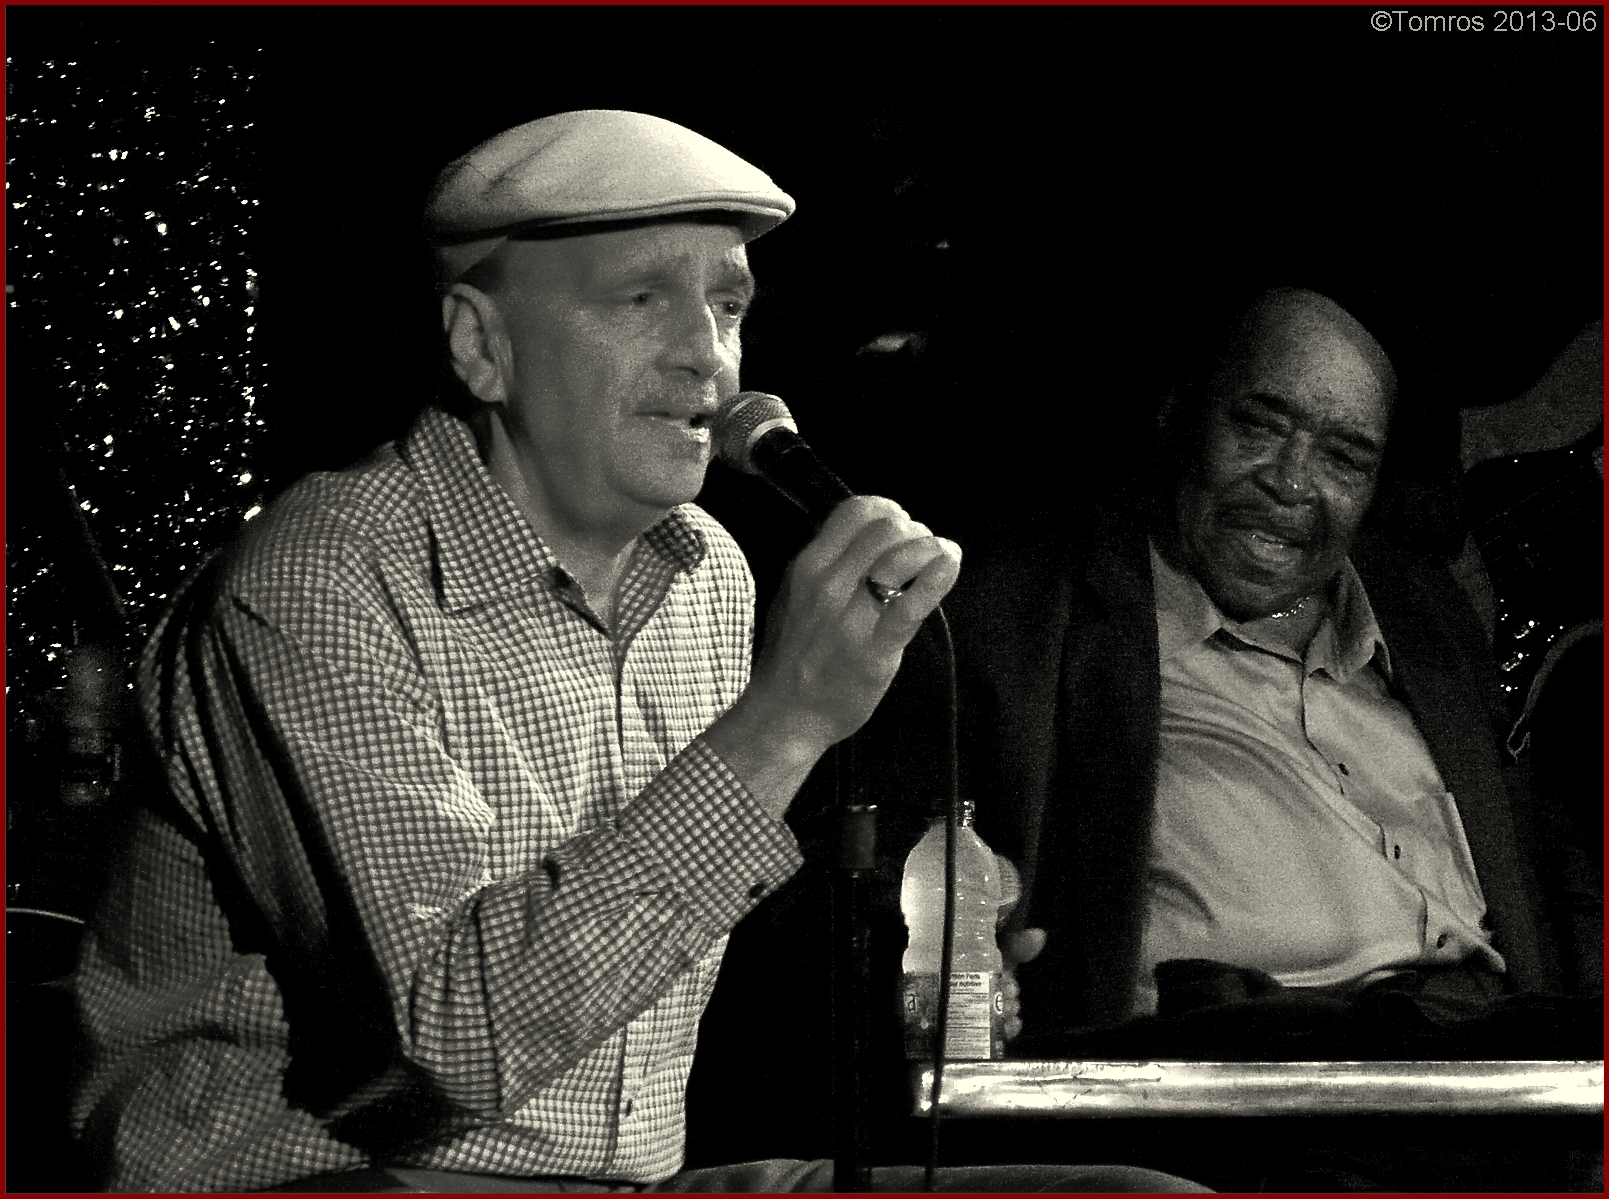 Darrell nulisch at the horseshoe with james cotton band, june 2013